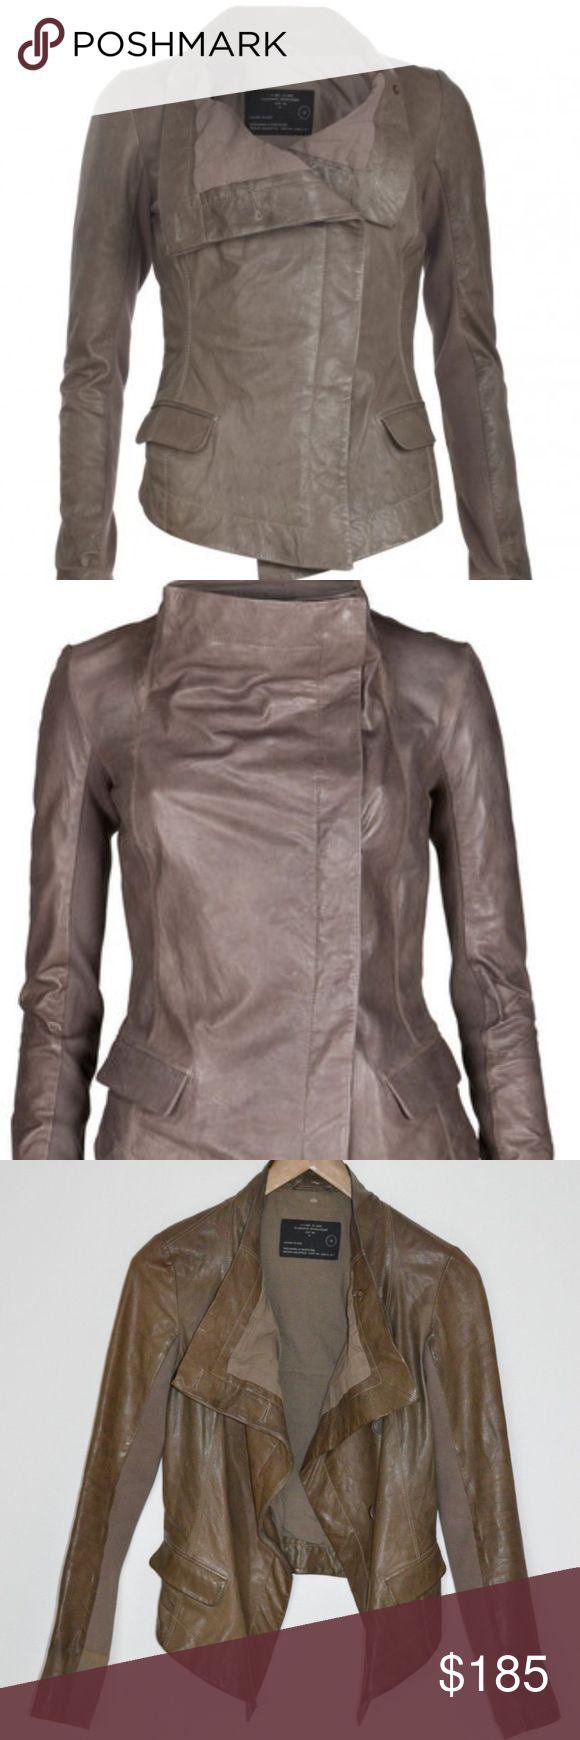 """AllSaints """"Feathers"""" Leather Draped Moto Jacket AllSaints Spitalfields """"Feathers"""" Leather Drape Jacket Everyone needs a good leather jacket, and this one is timeless. It's sleek, sophisticated, and guaranteed to look good no matter what you wear it with. Versatile wear - neck can be buttoned and funneled or open and draped.  100%  Leather. Butter soft. Lining: 100% Cotton. Sleeve paneled lining: 100% Viscose. Size: UK8 US4 Rare Allsaints piece from iconic 2010 collection Allsaints Jackets…"""